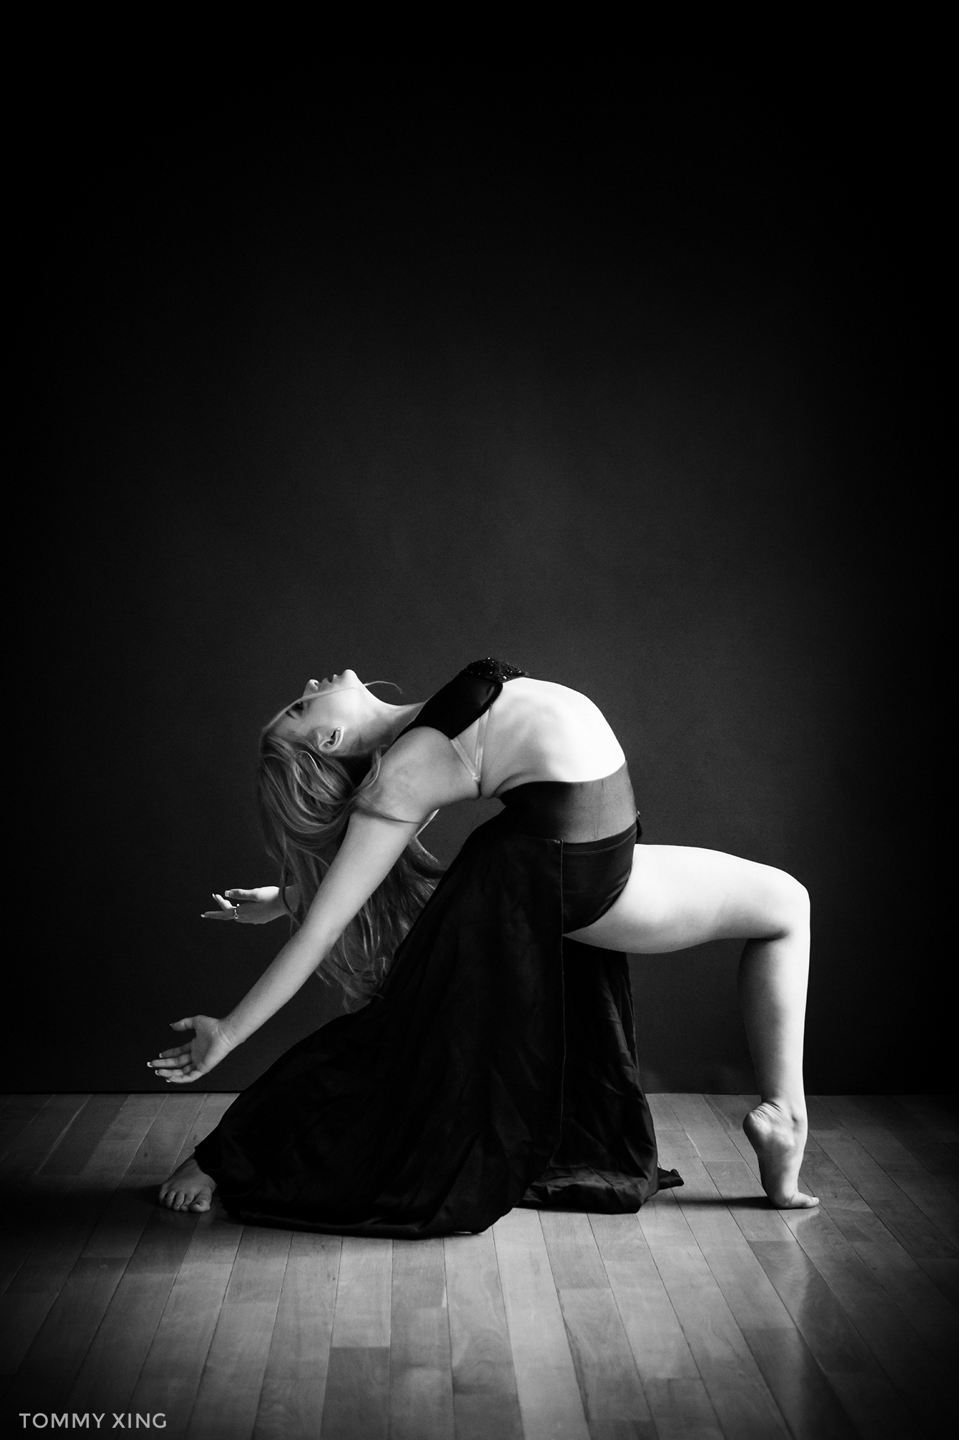 Los Angeles Dance photography - Haley - Tommy Xing02.JPG